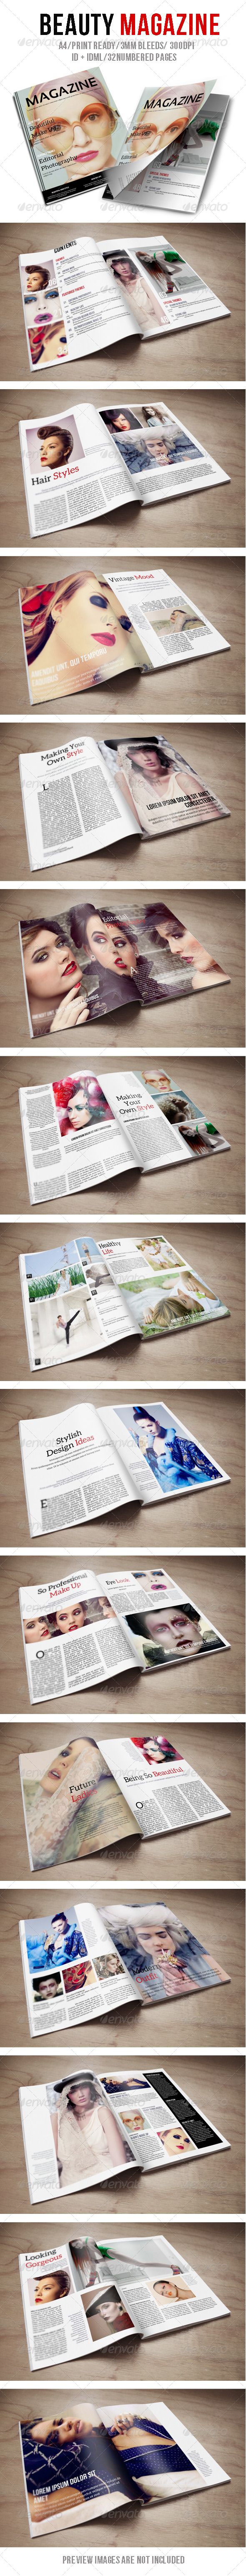 Beauty Magazine - Magazines Print Templates